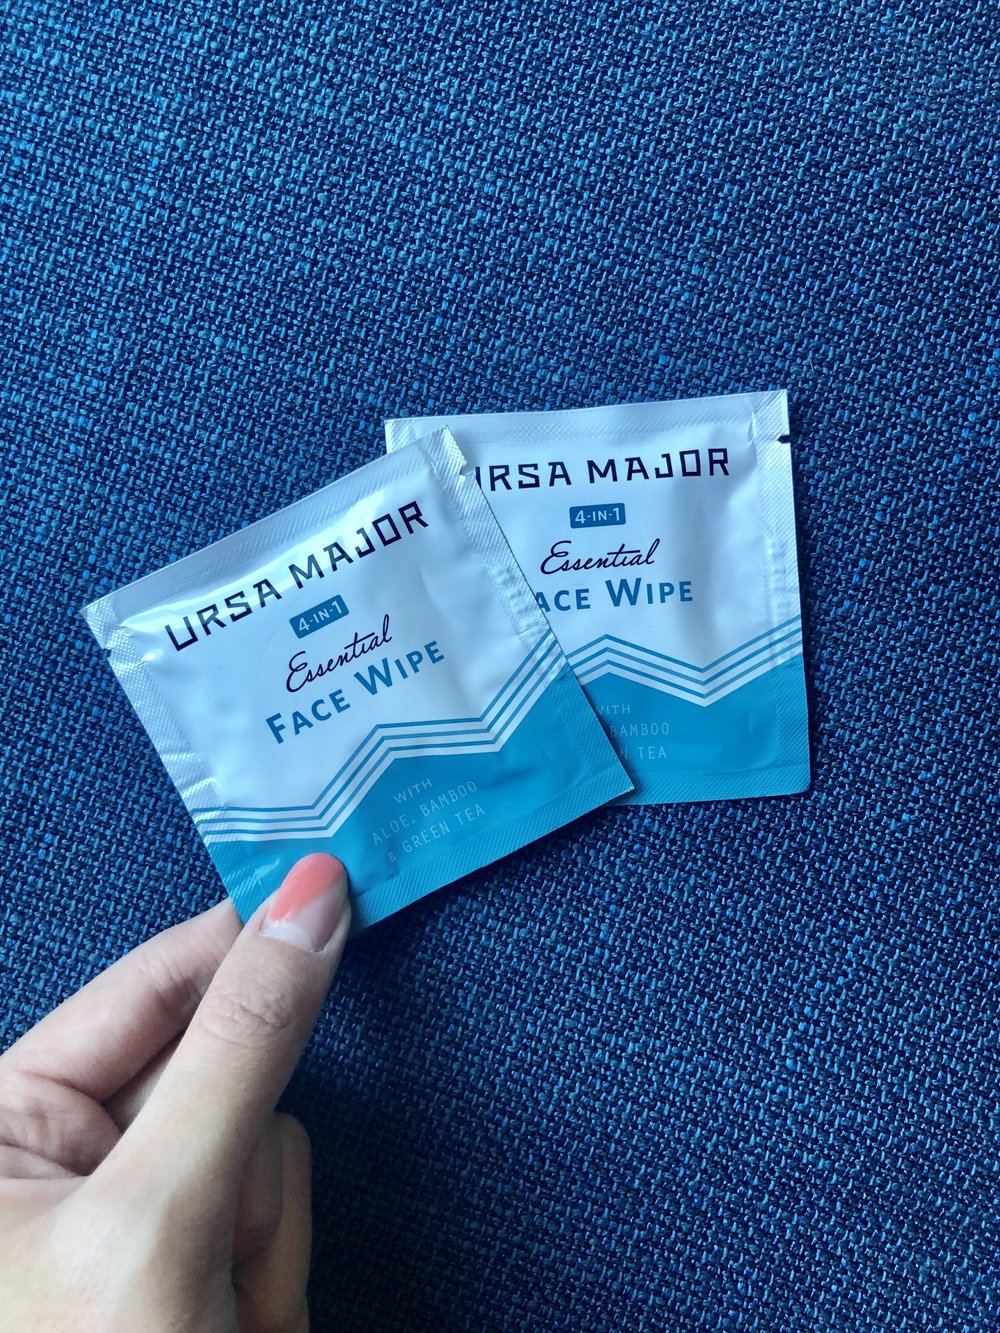 Ursa Major: Essential Face Wipes - Full-Size $24